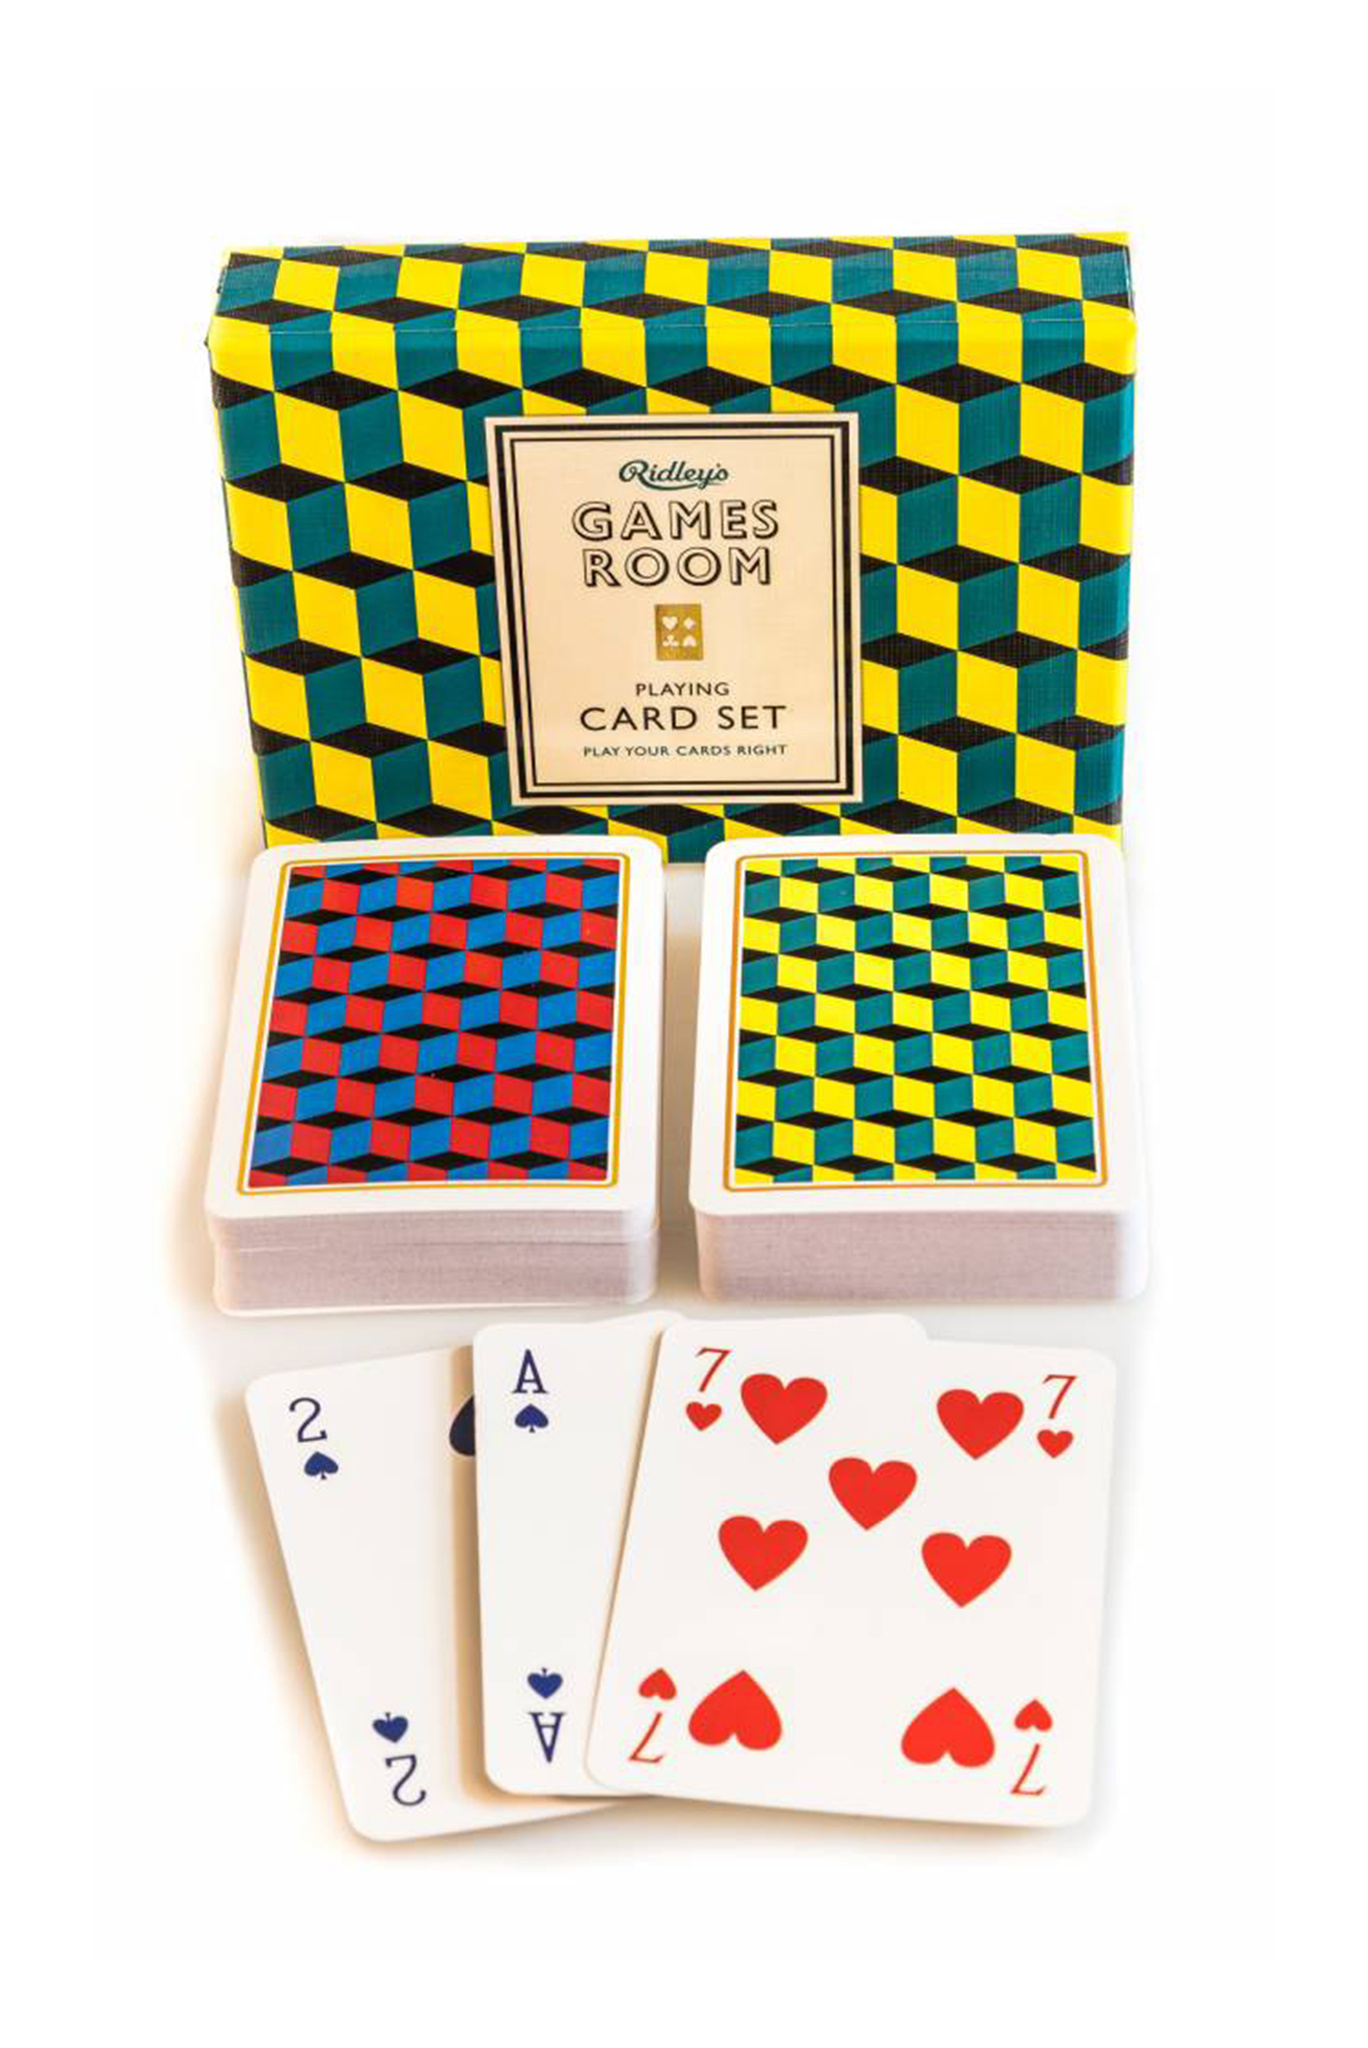 Ridley's  Ridley's  Games Room - Playing cards